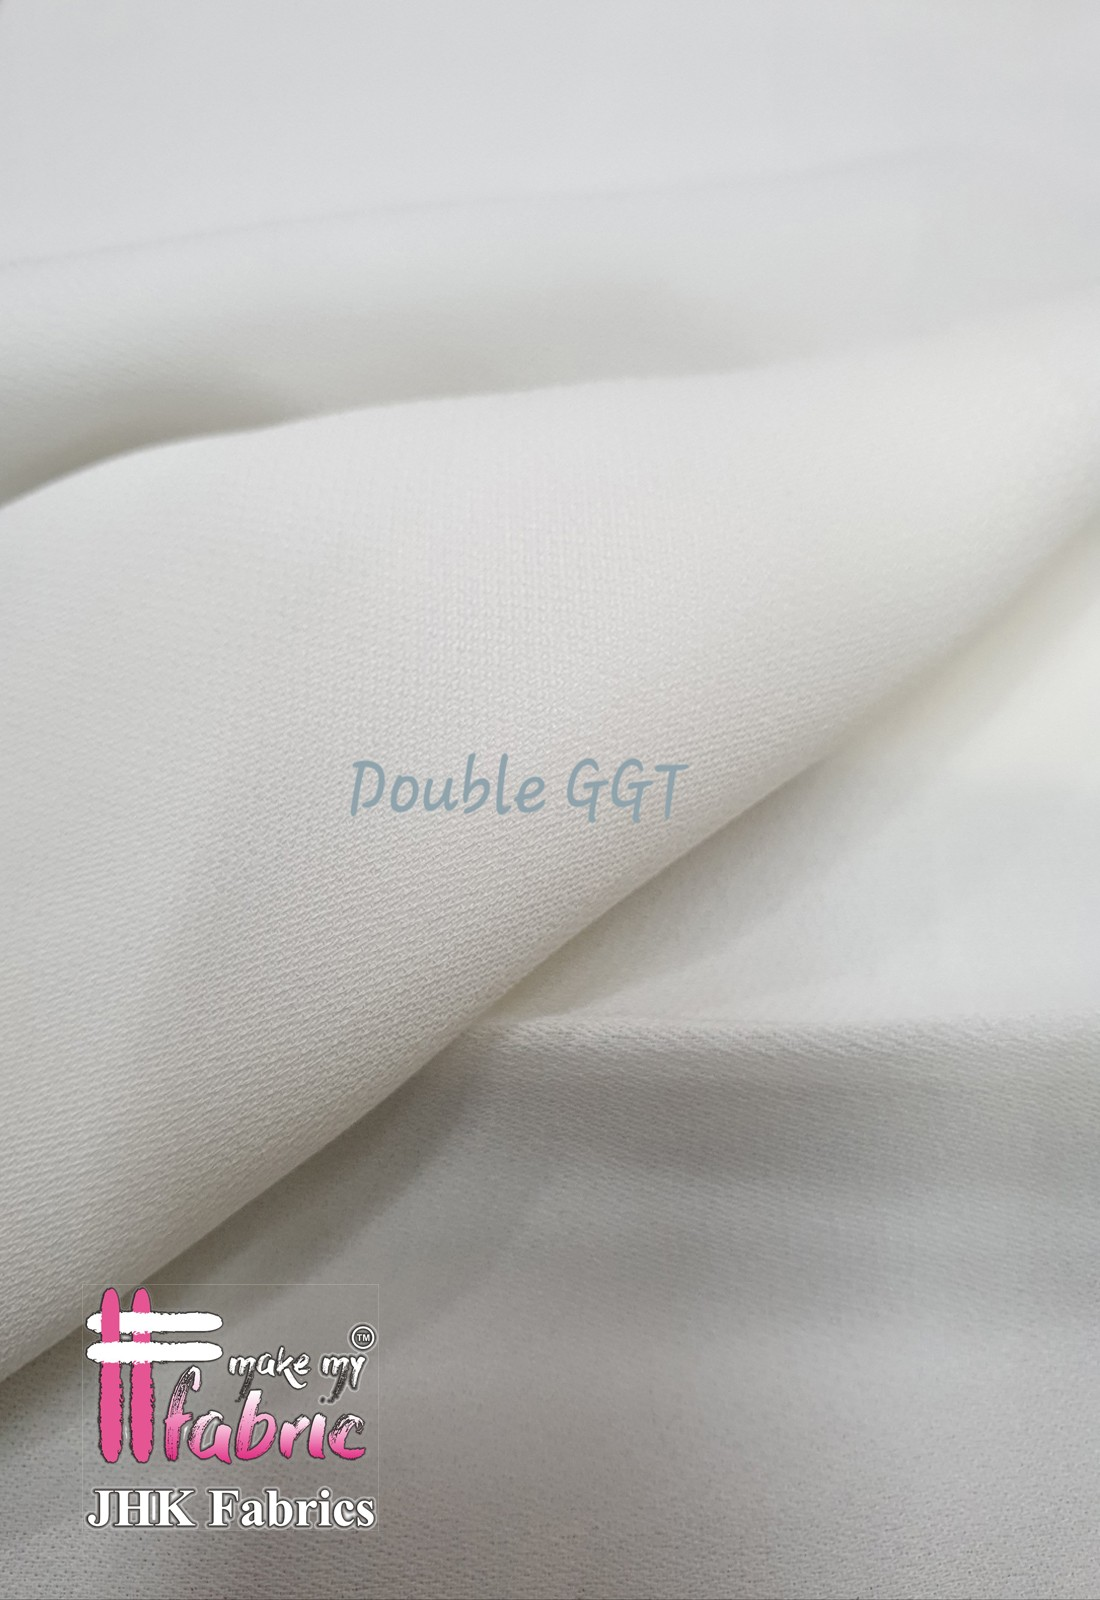 Double Ggt